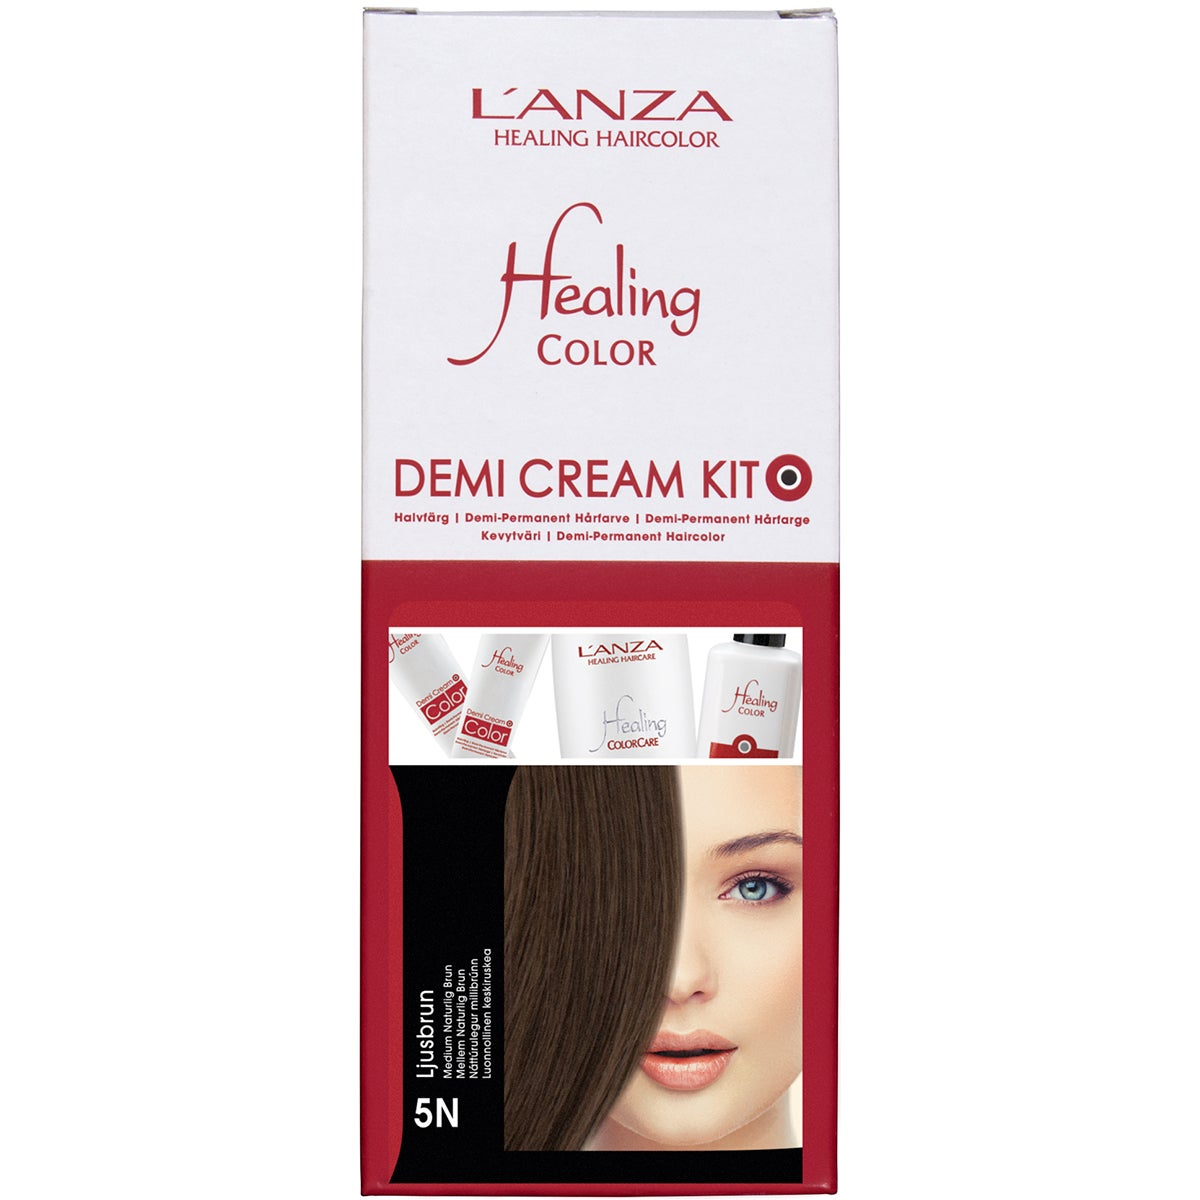 L'ANZA Healing Color Demi Cream Kit, 5N Ljusbrun